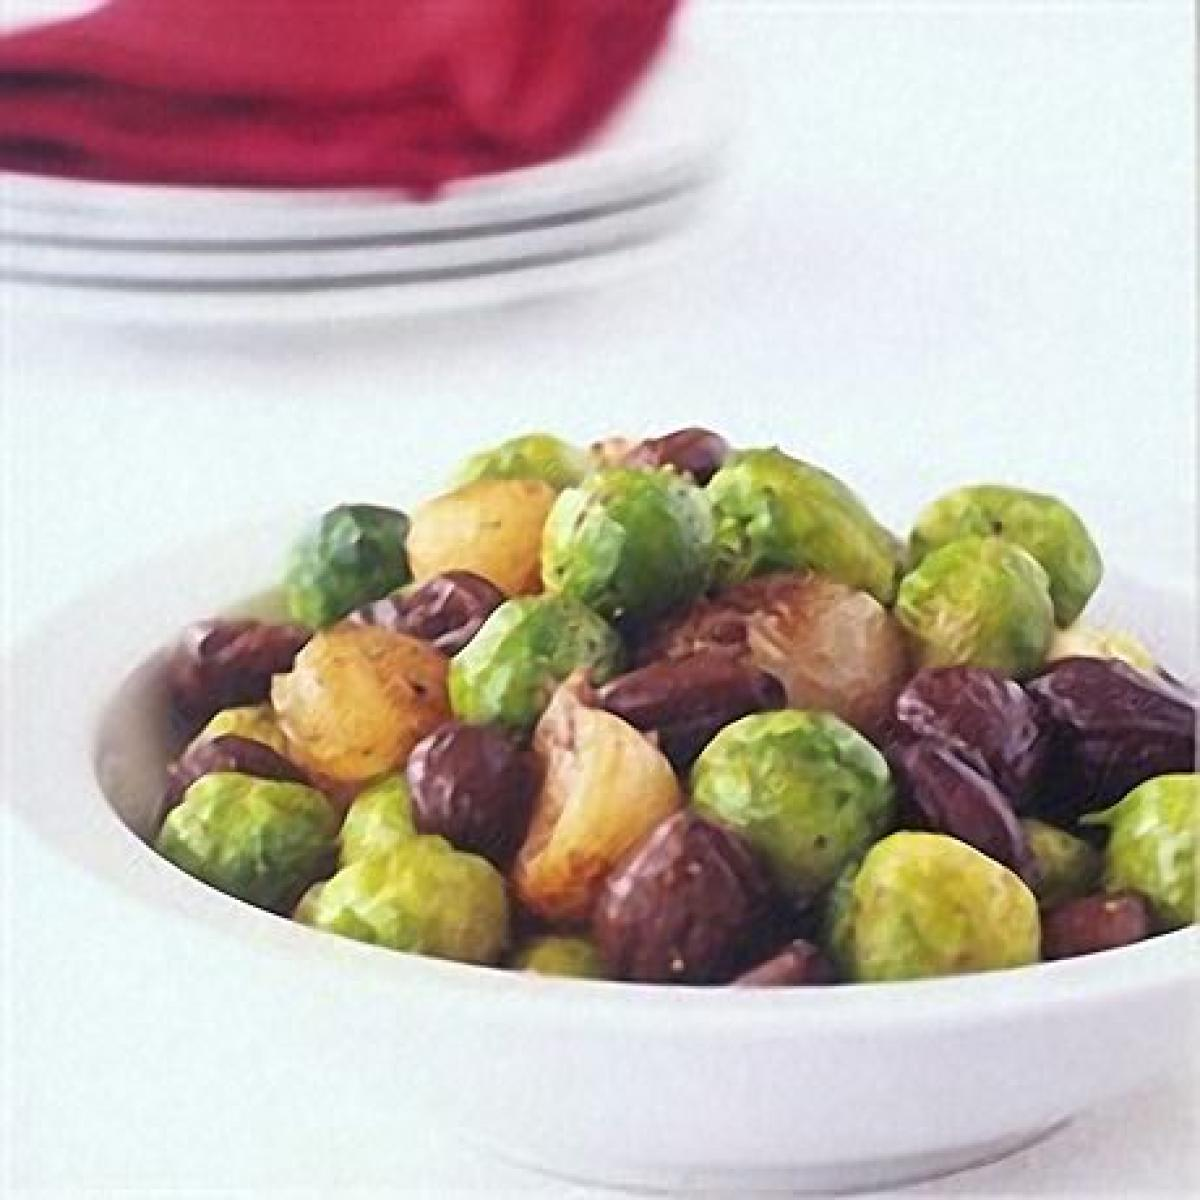 A picture of Delia's Sautéed Brussels Sprouts with Chestnuts recipe